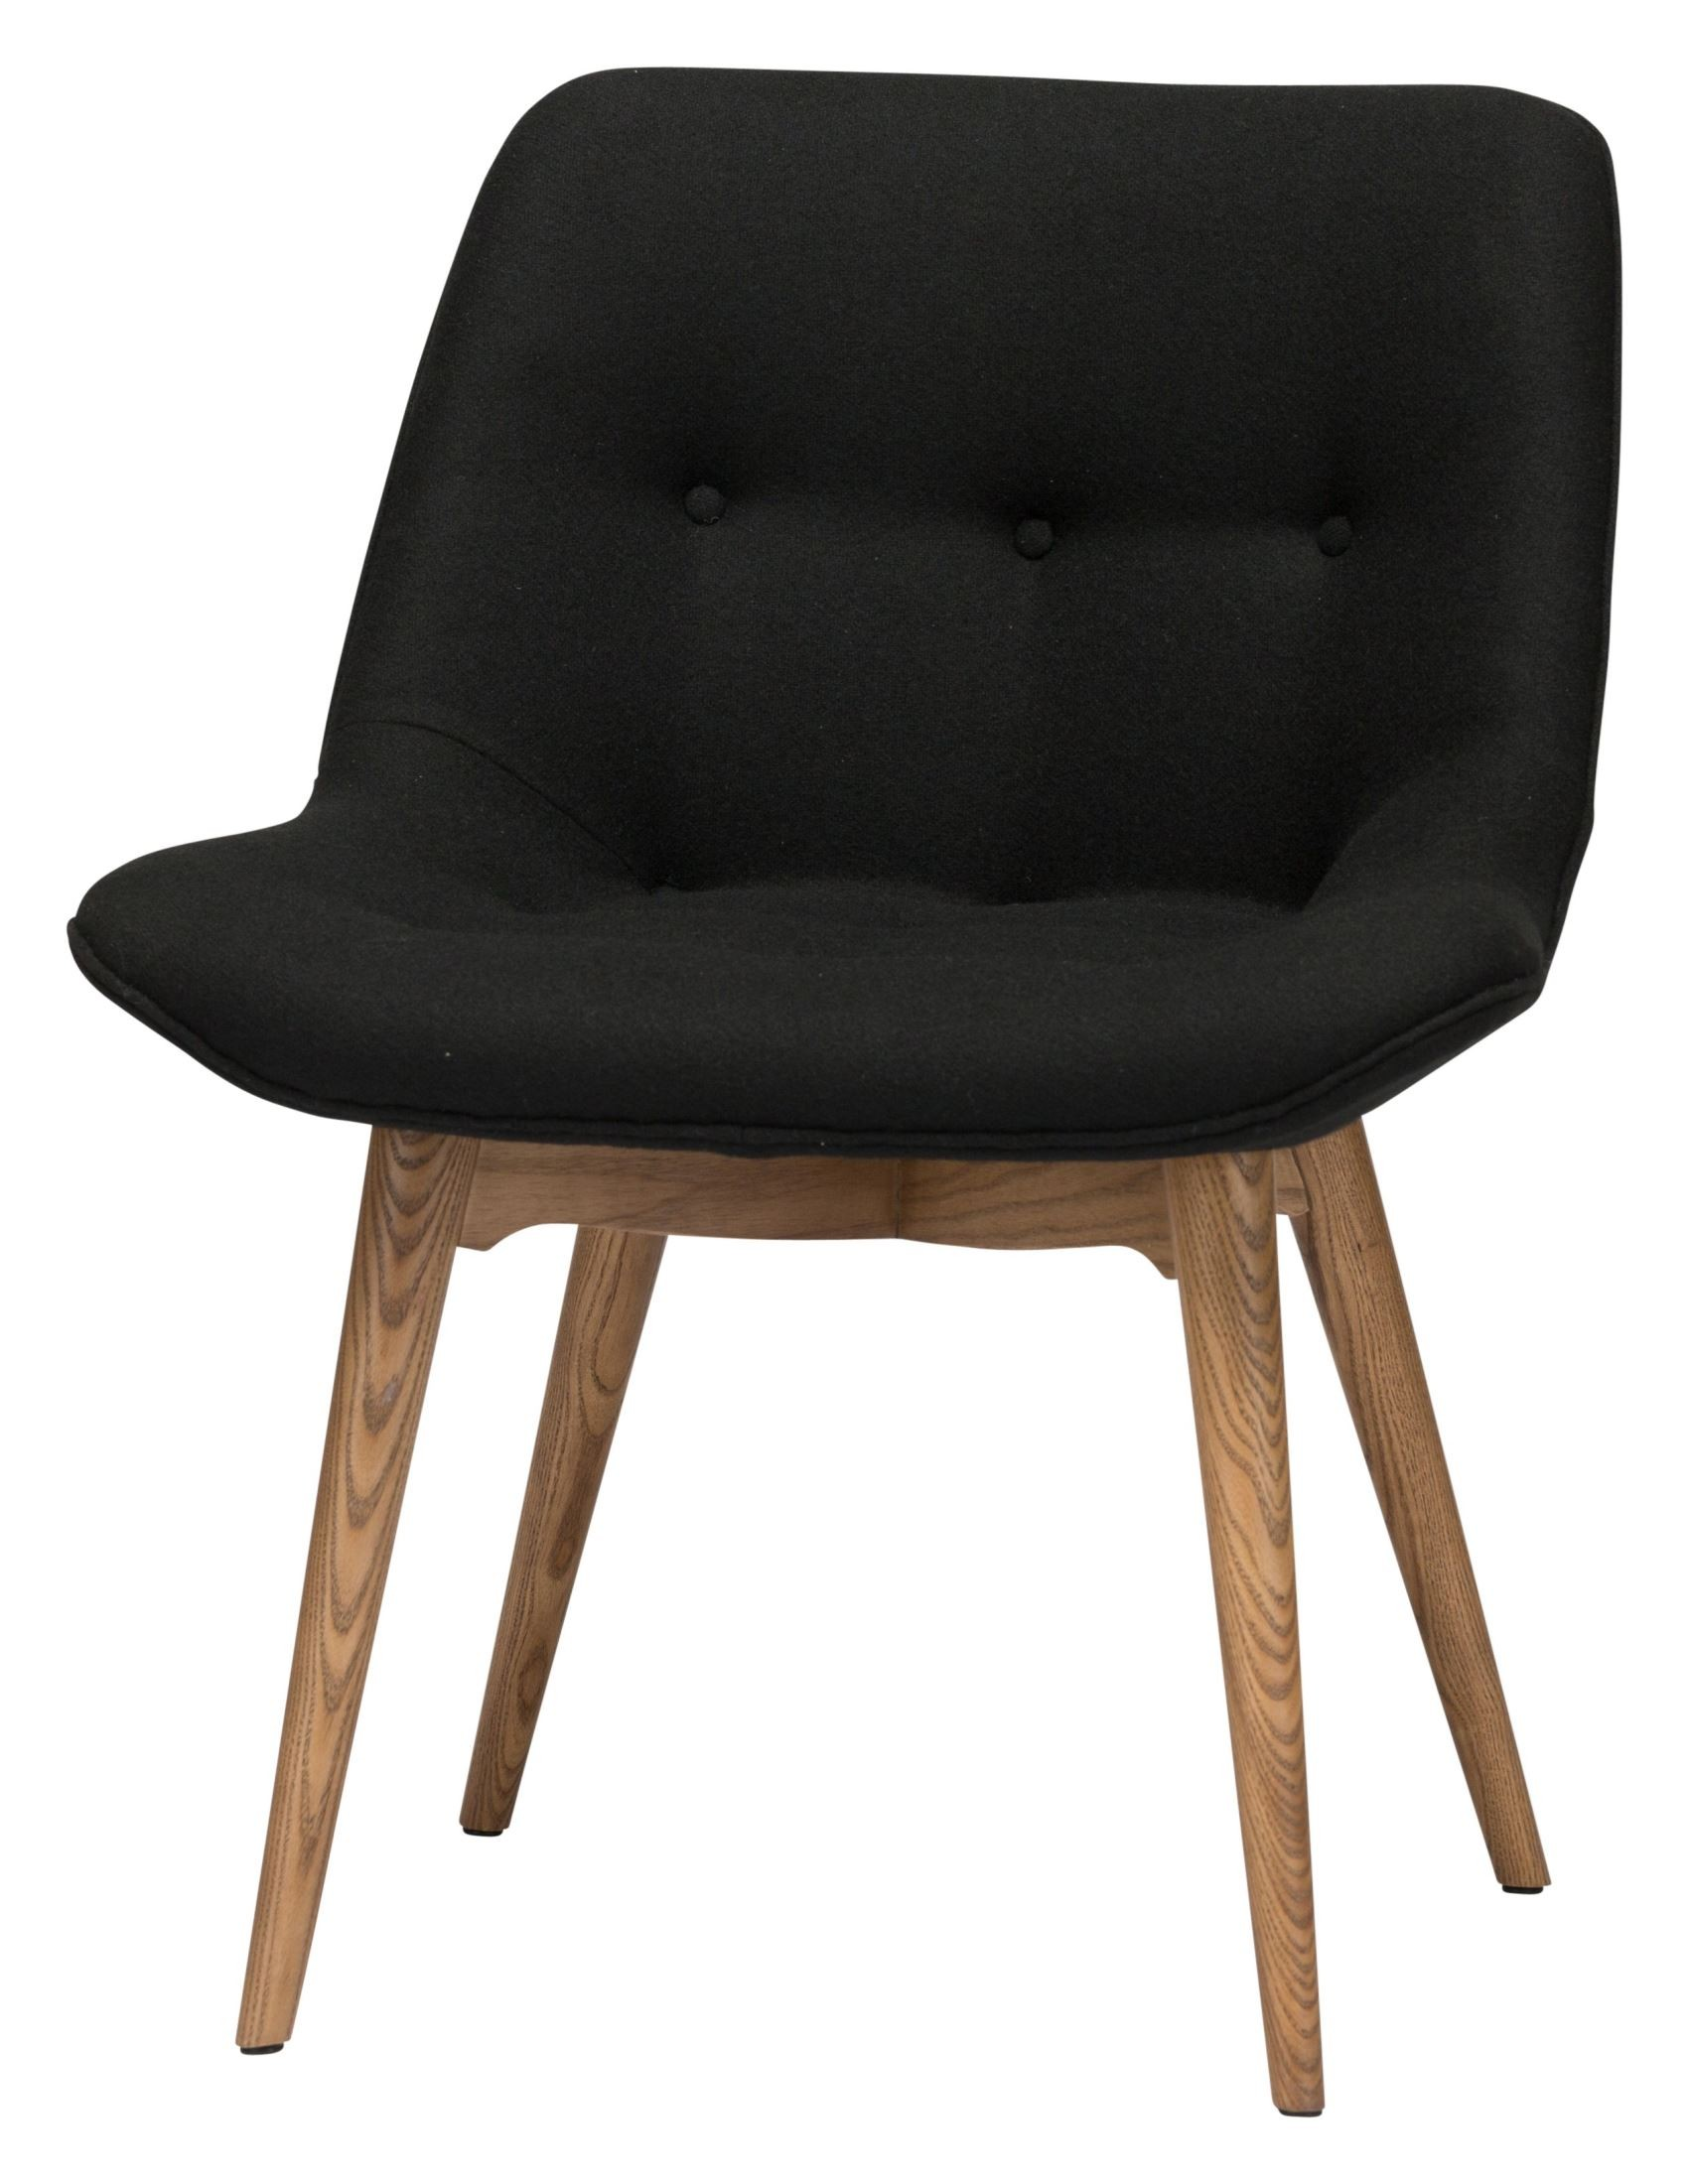 Brie Black Fabric Dining Chair from Nuevo